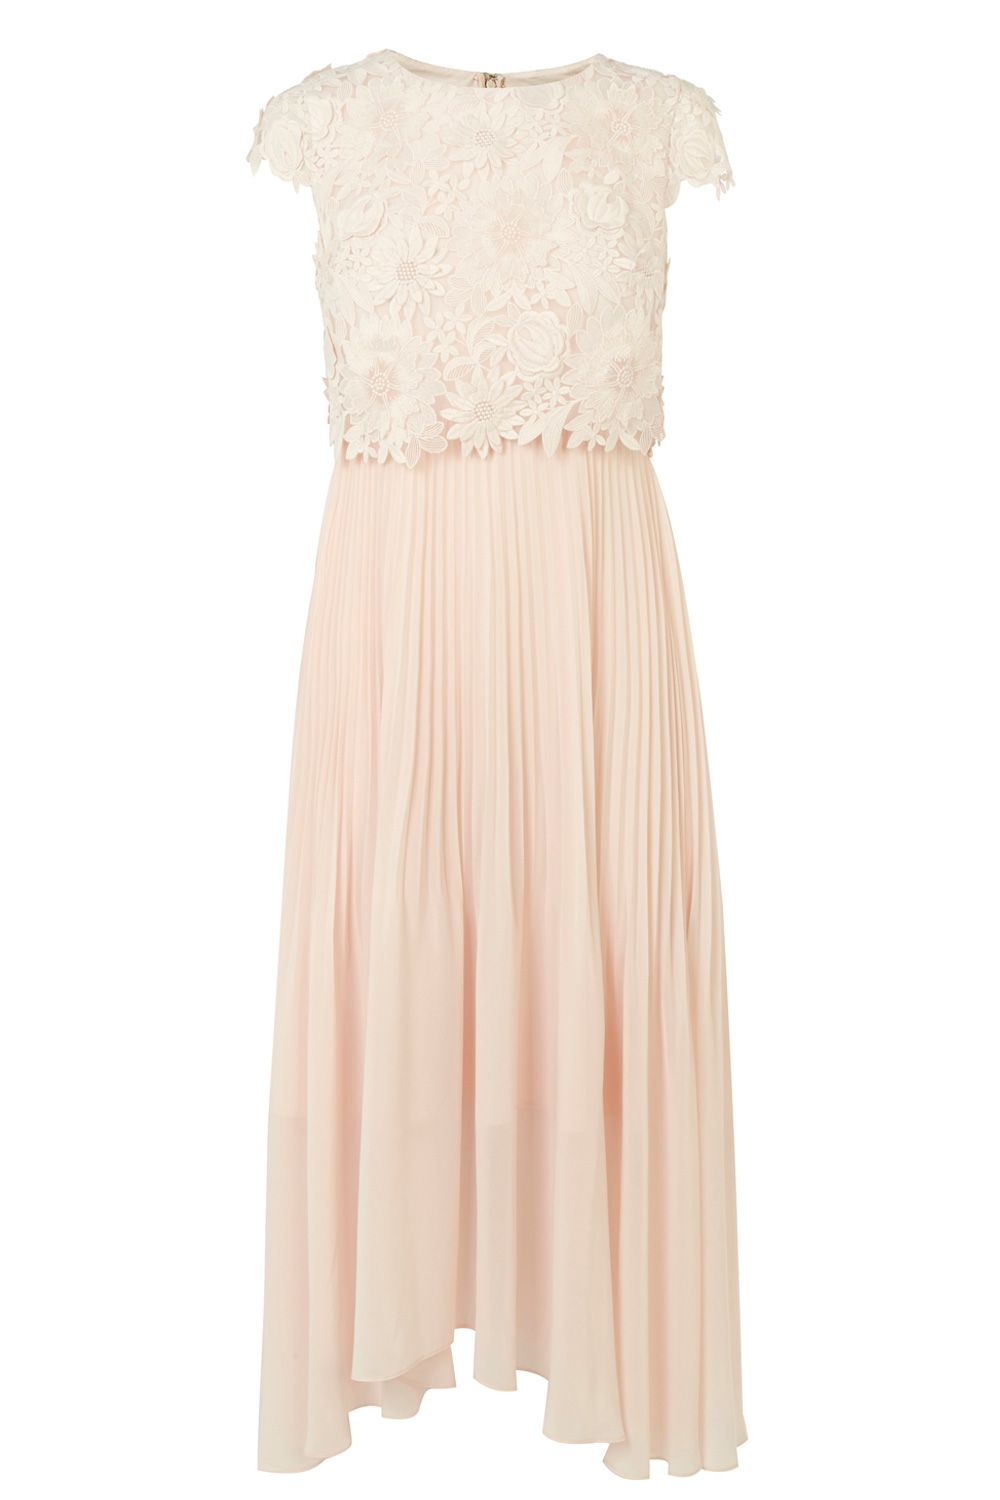 Coast. DARIANNA EMBROIDERED DRESS. Wedding guest dresses from the UK ...